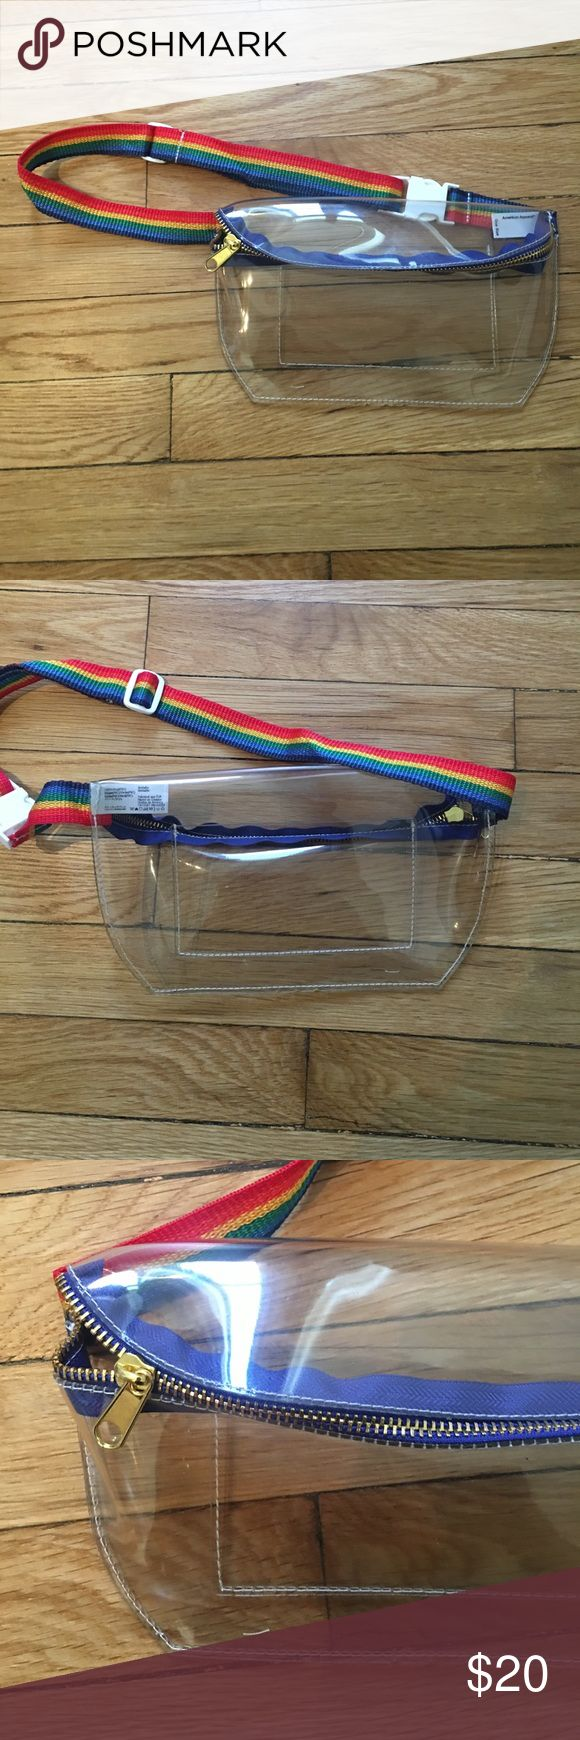 American Apparel Vinal Fanny Pack American Apparel Vinyl Fally pack with Rainbow adjustable strap.  Not made anymore!! Never been used, New condition. American Apparel Bags